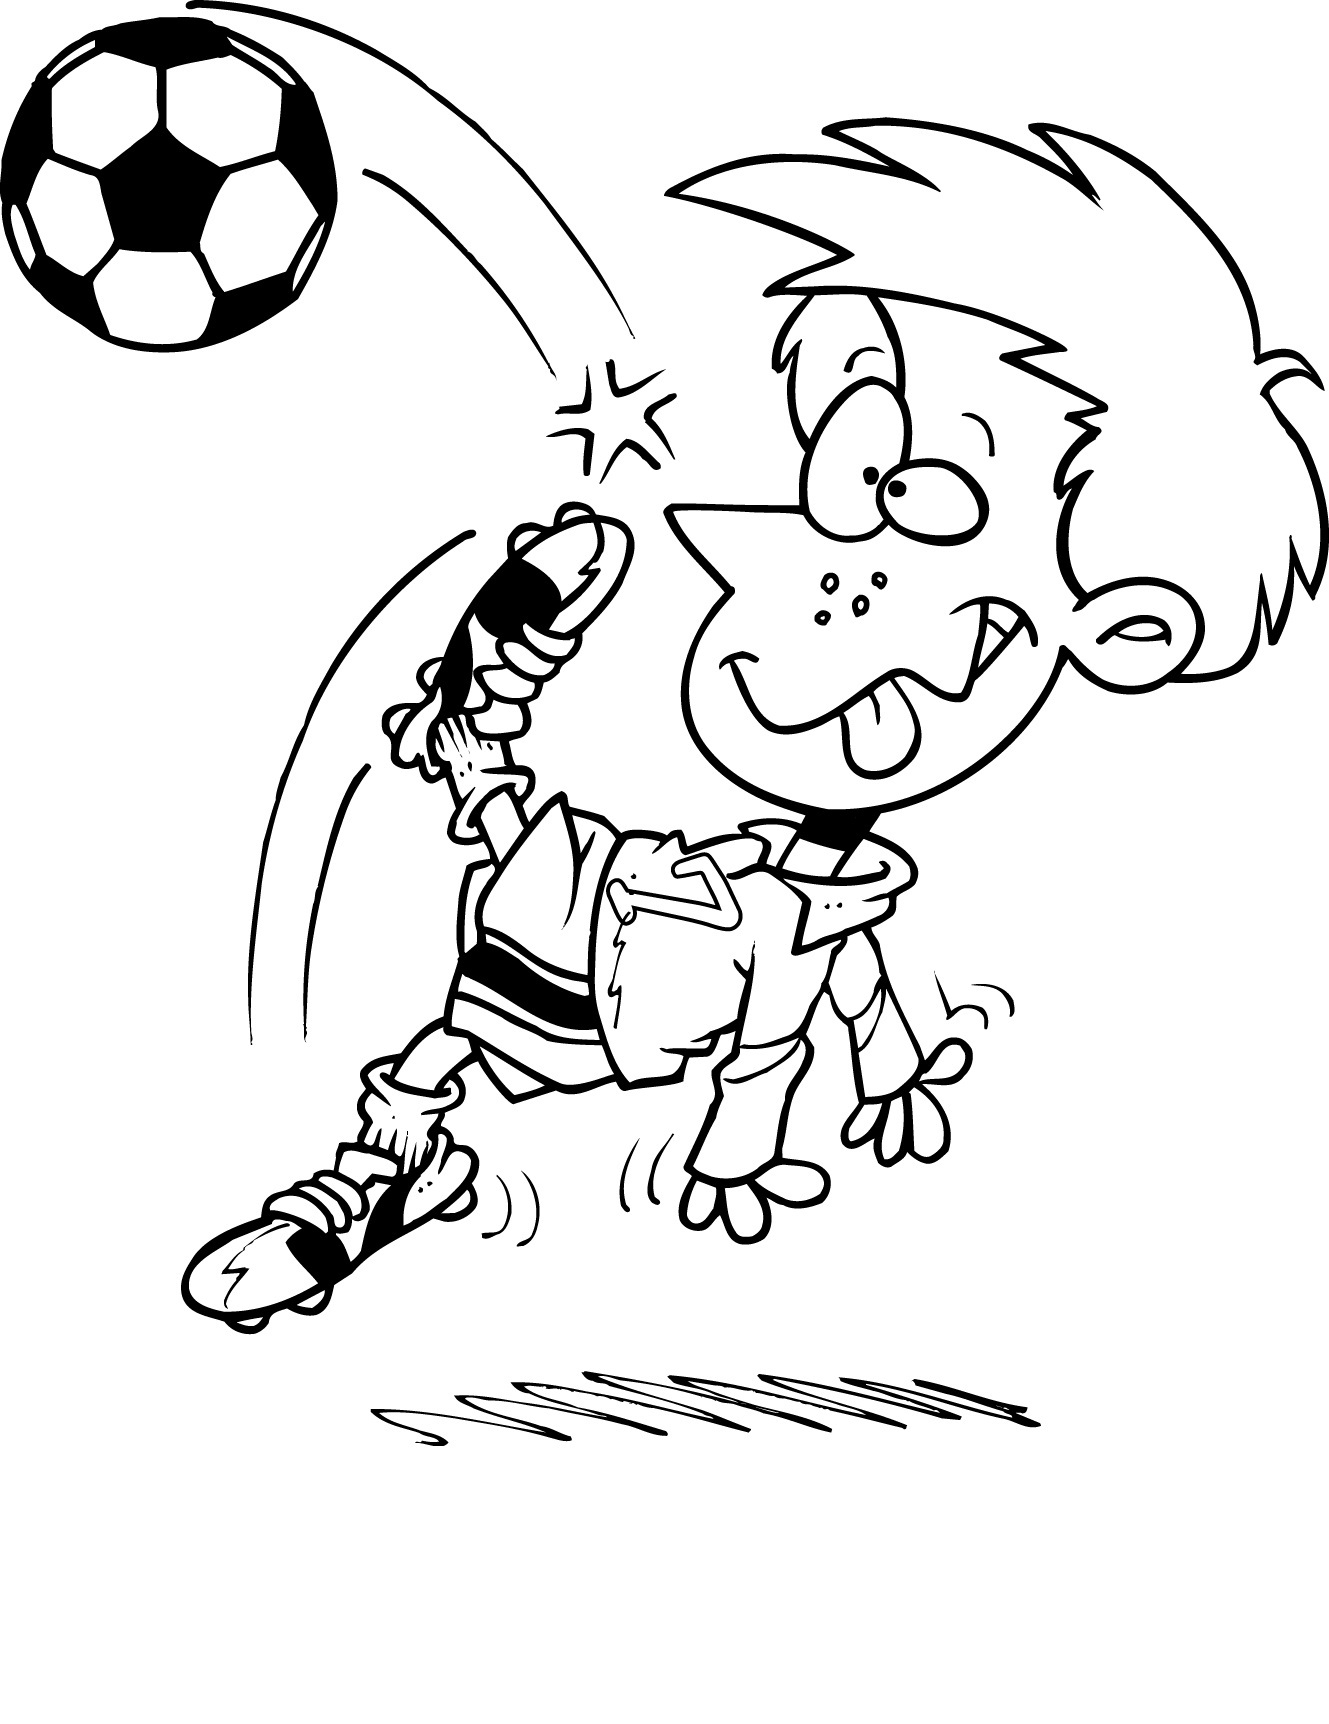 Free Printable Soccer Coloring Pages For Kids Colouring Pages Free